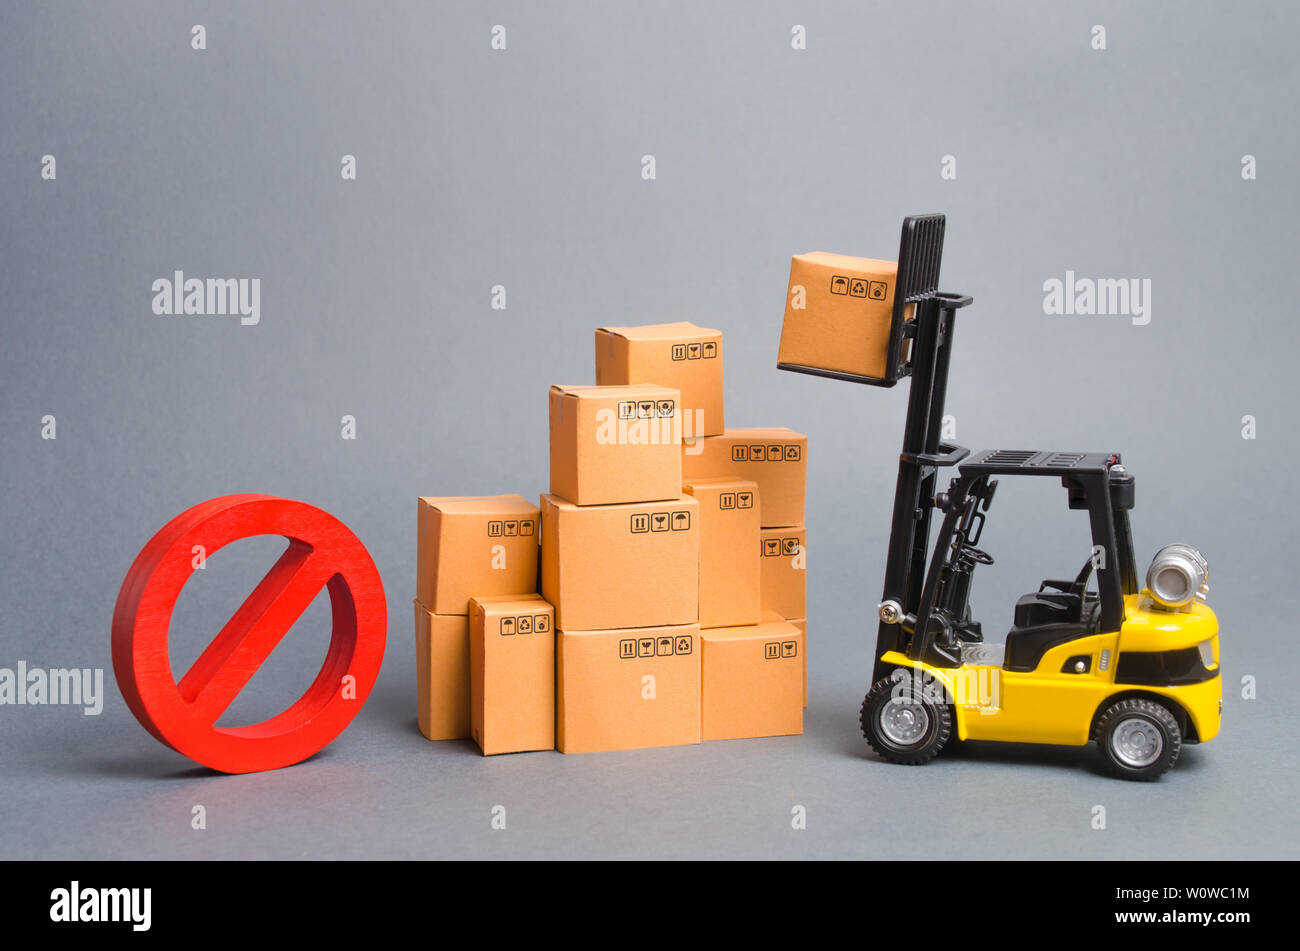 Yellow Forklift truck truckraises a box over a stack of boxes and a red symbol NO. Embargo trade wars. Restriction on importation of goods, ban on exp - Stock Image